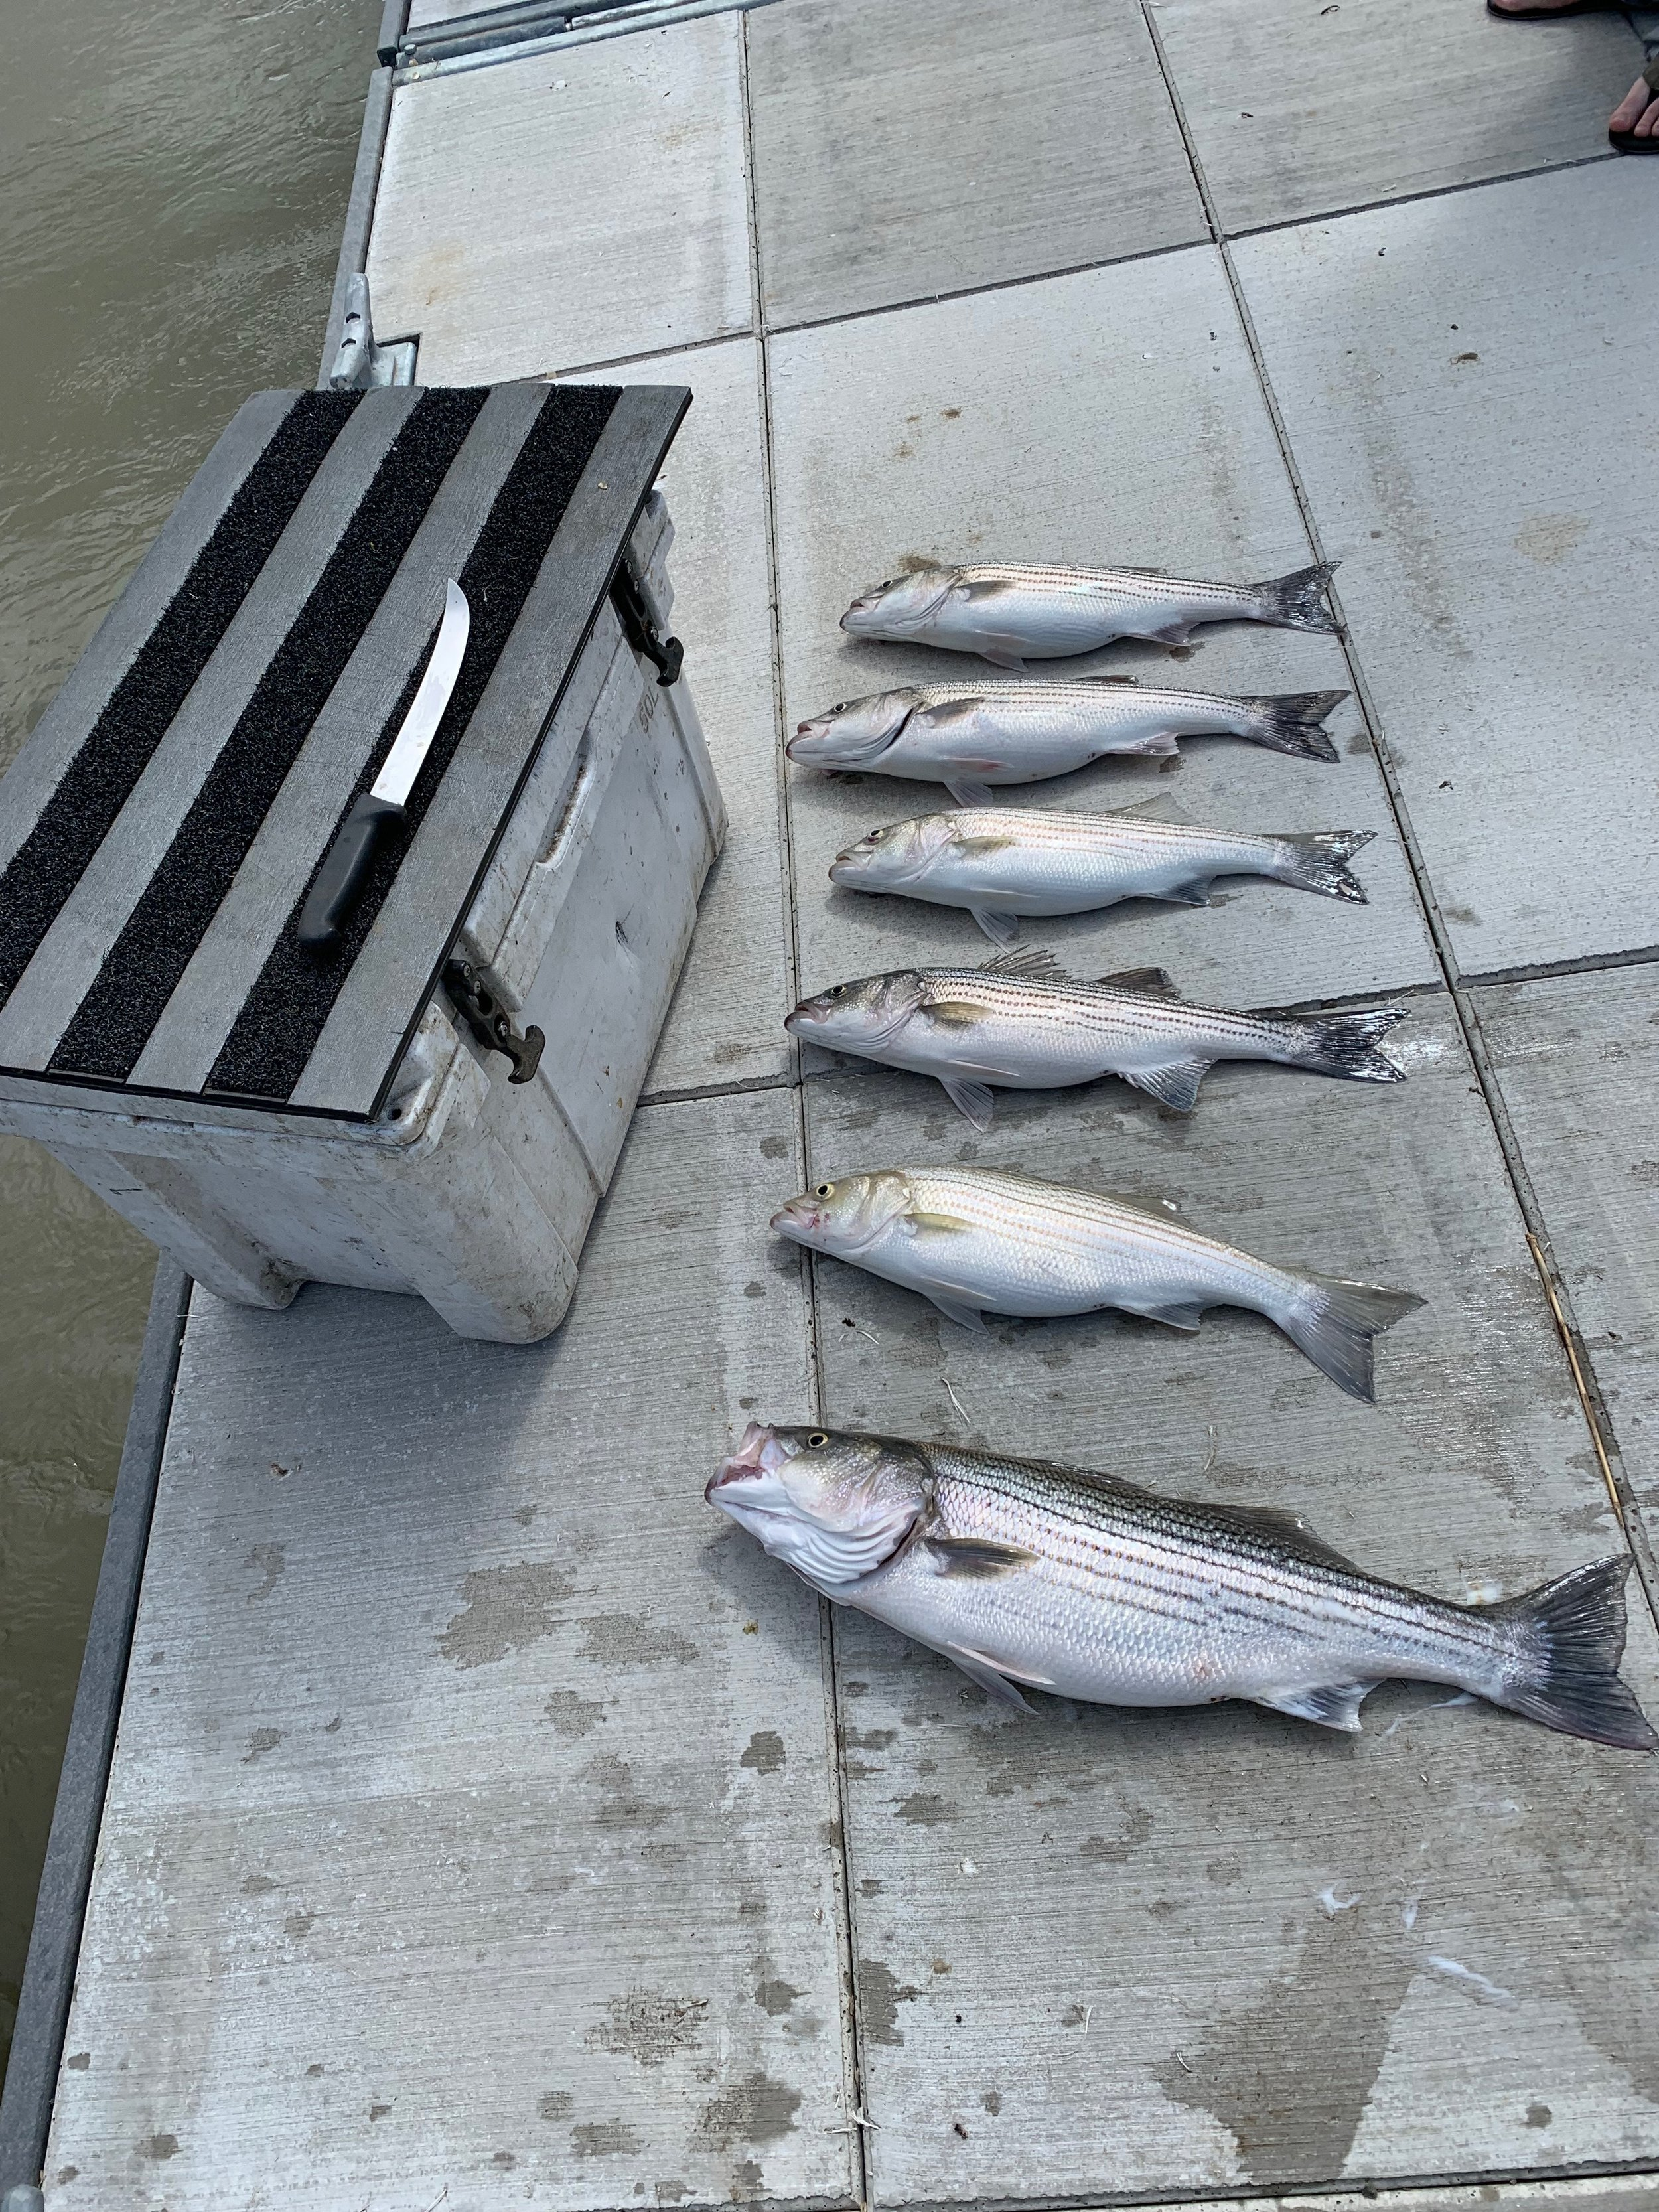 Fishing Guide Mike Rasmussen of Mike's Guide Service ( 530-722-8876 ), and Corning, Ca residents Oscar Nerey and Nick Kanabroki, show off their limits of striped bass they caught on the Sacramento River near Colusa, Ca on April 16, 2019.